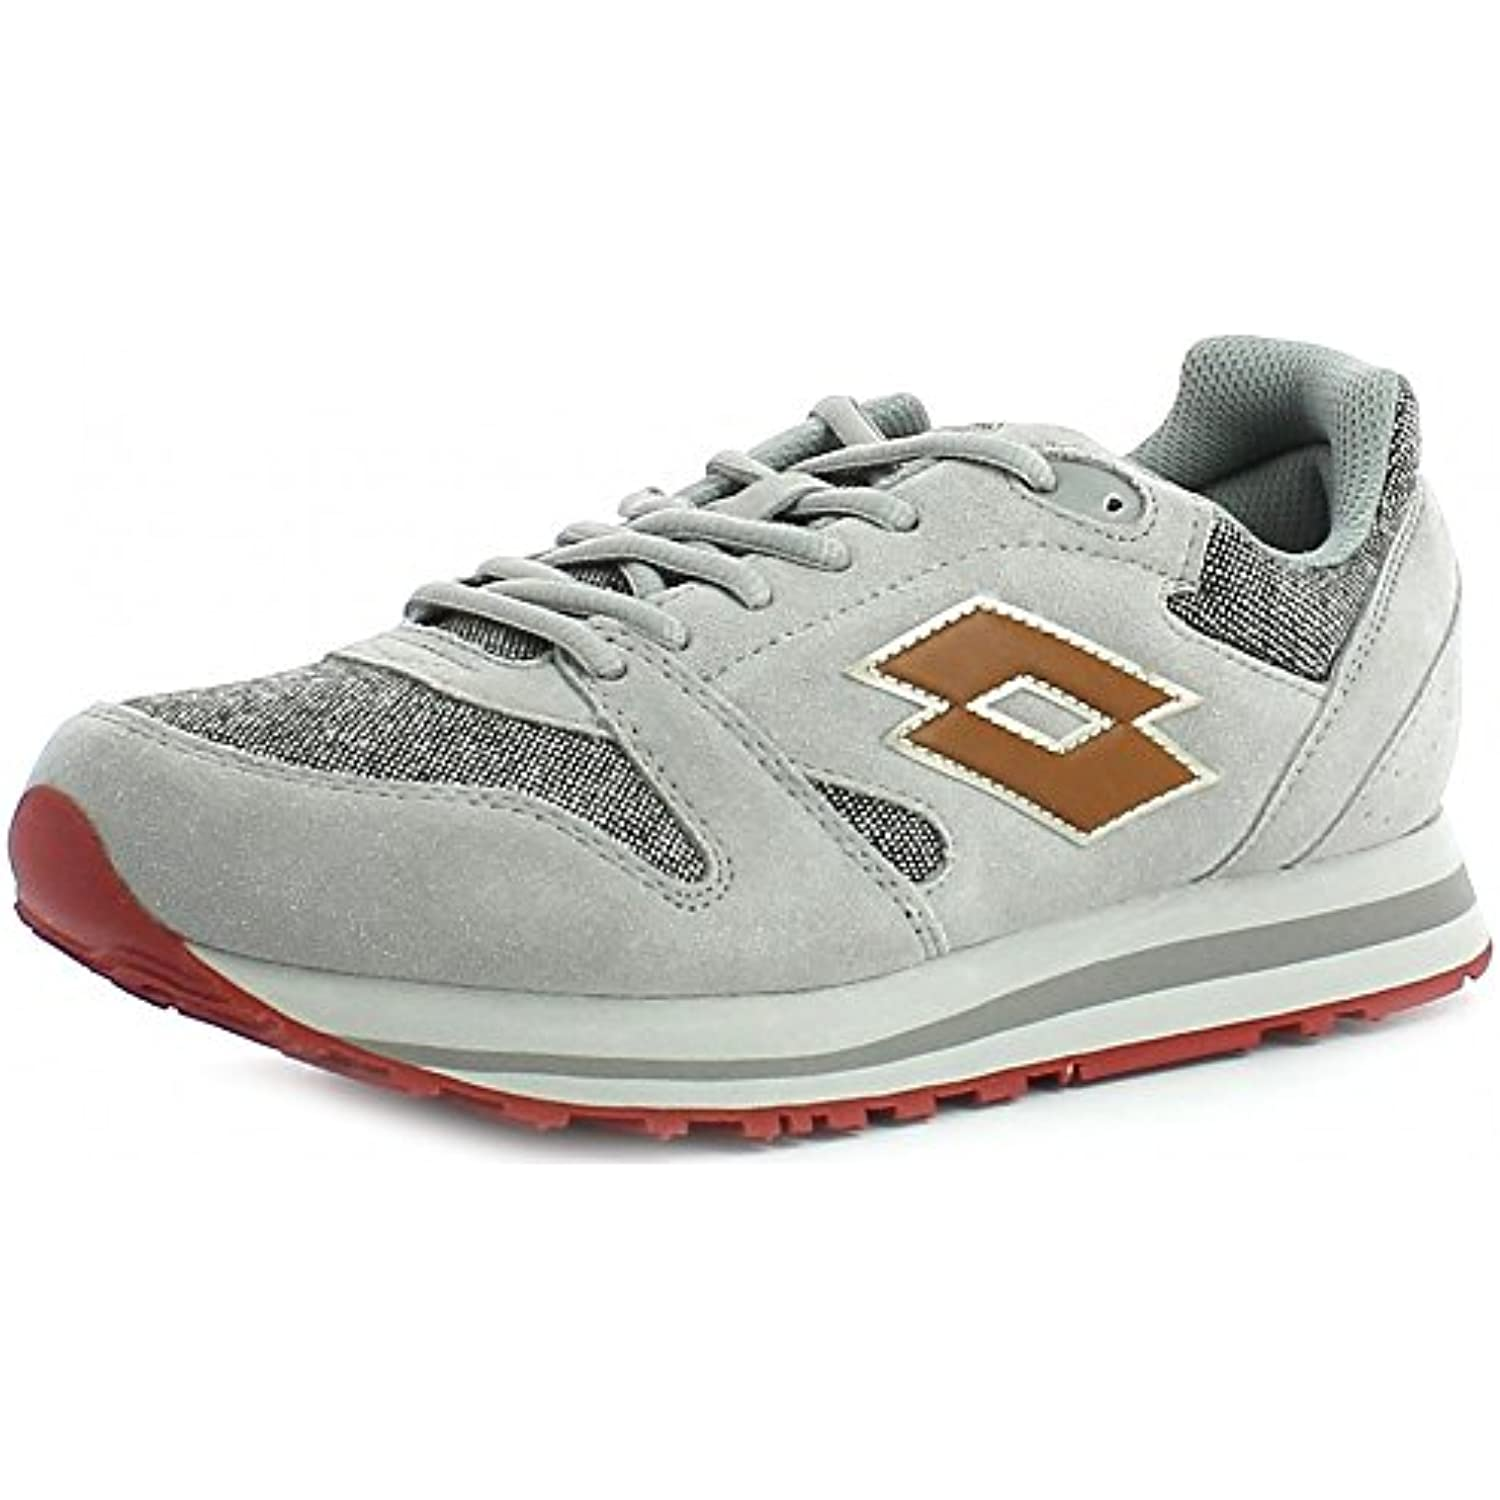 Lotto TWD, Trainer VIII TWD, Lotto Scarpe Sportive Uomo Parent 3dd568